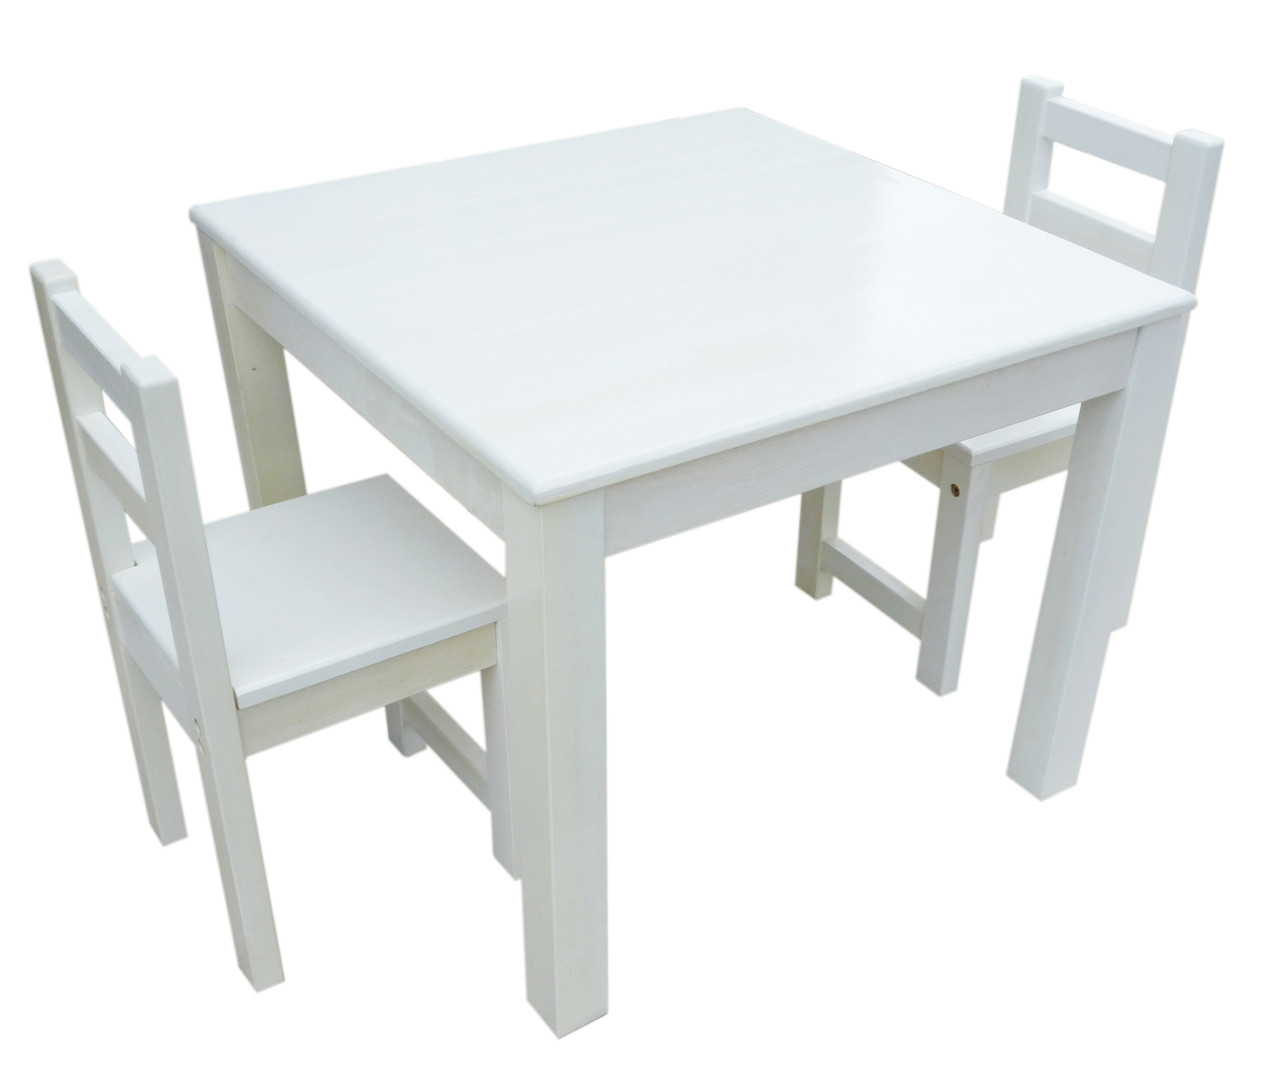 White Tables And Chairs: QToys Eco-Friendly White Table & Chair Set For Kids On